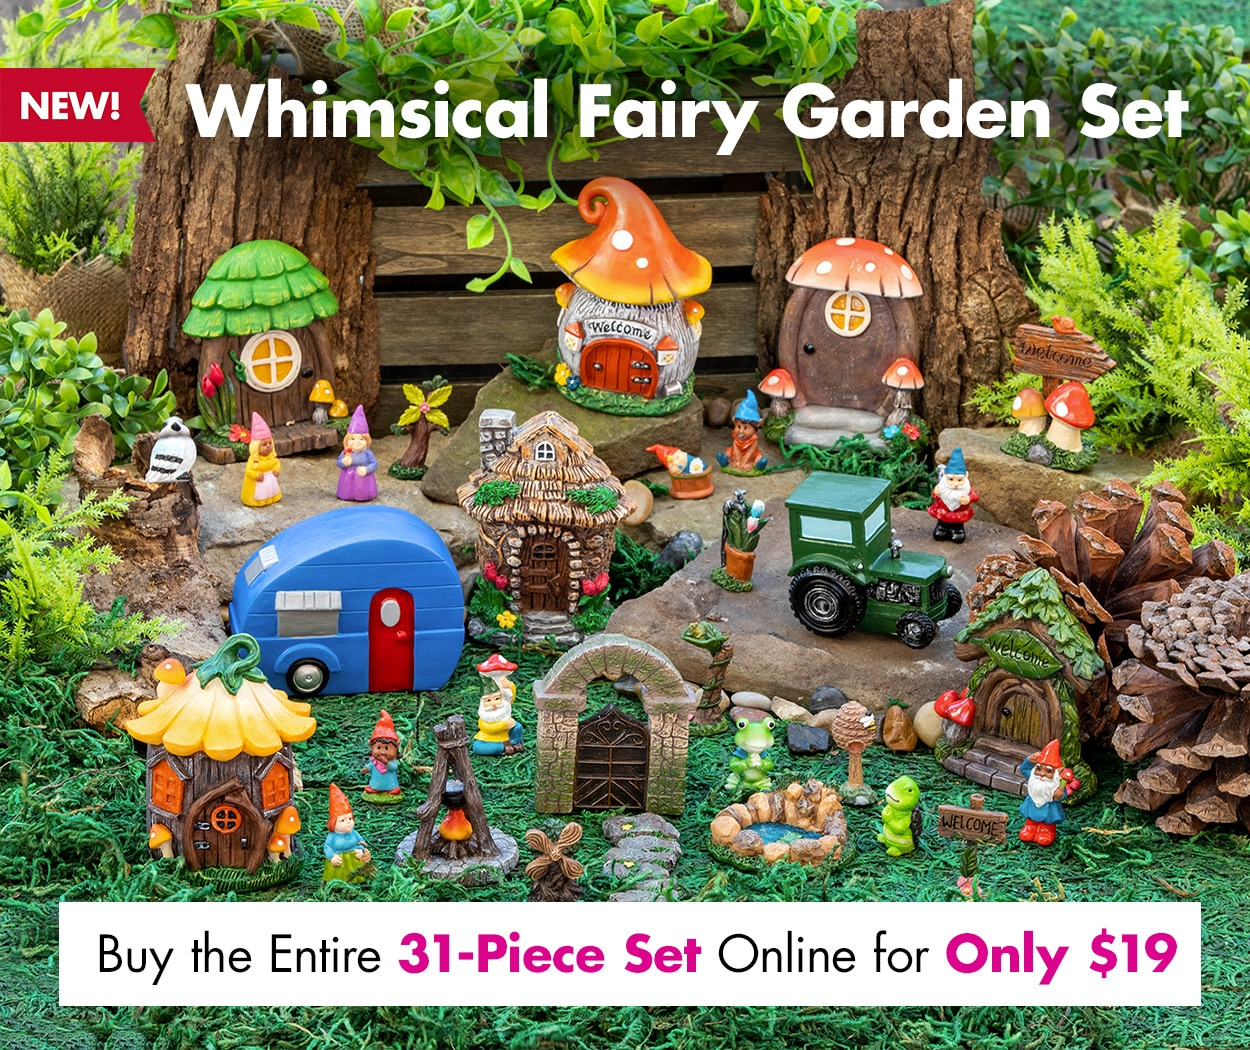 Shop Whimsical Fairy Garden Sets Online Now